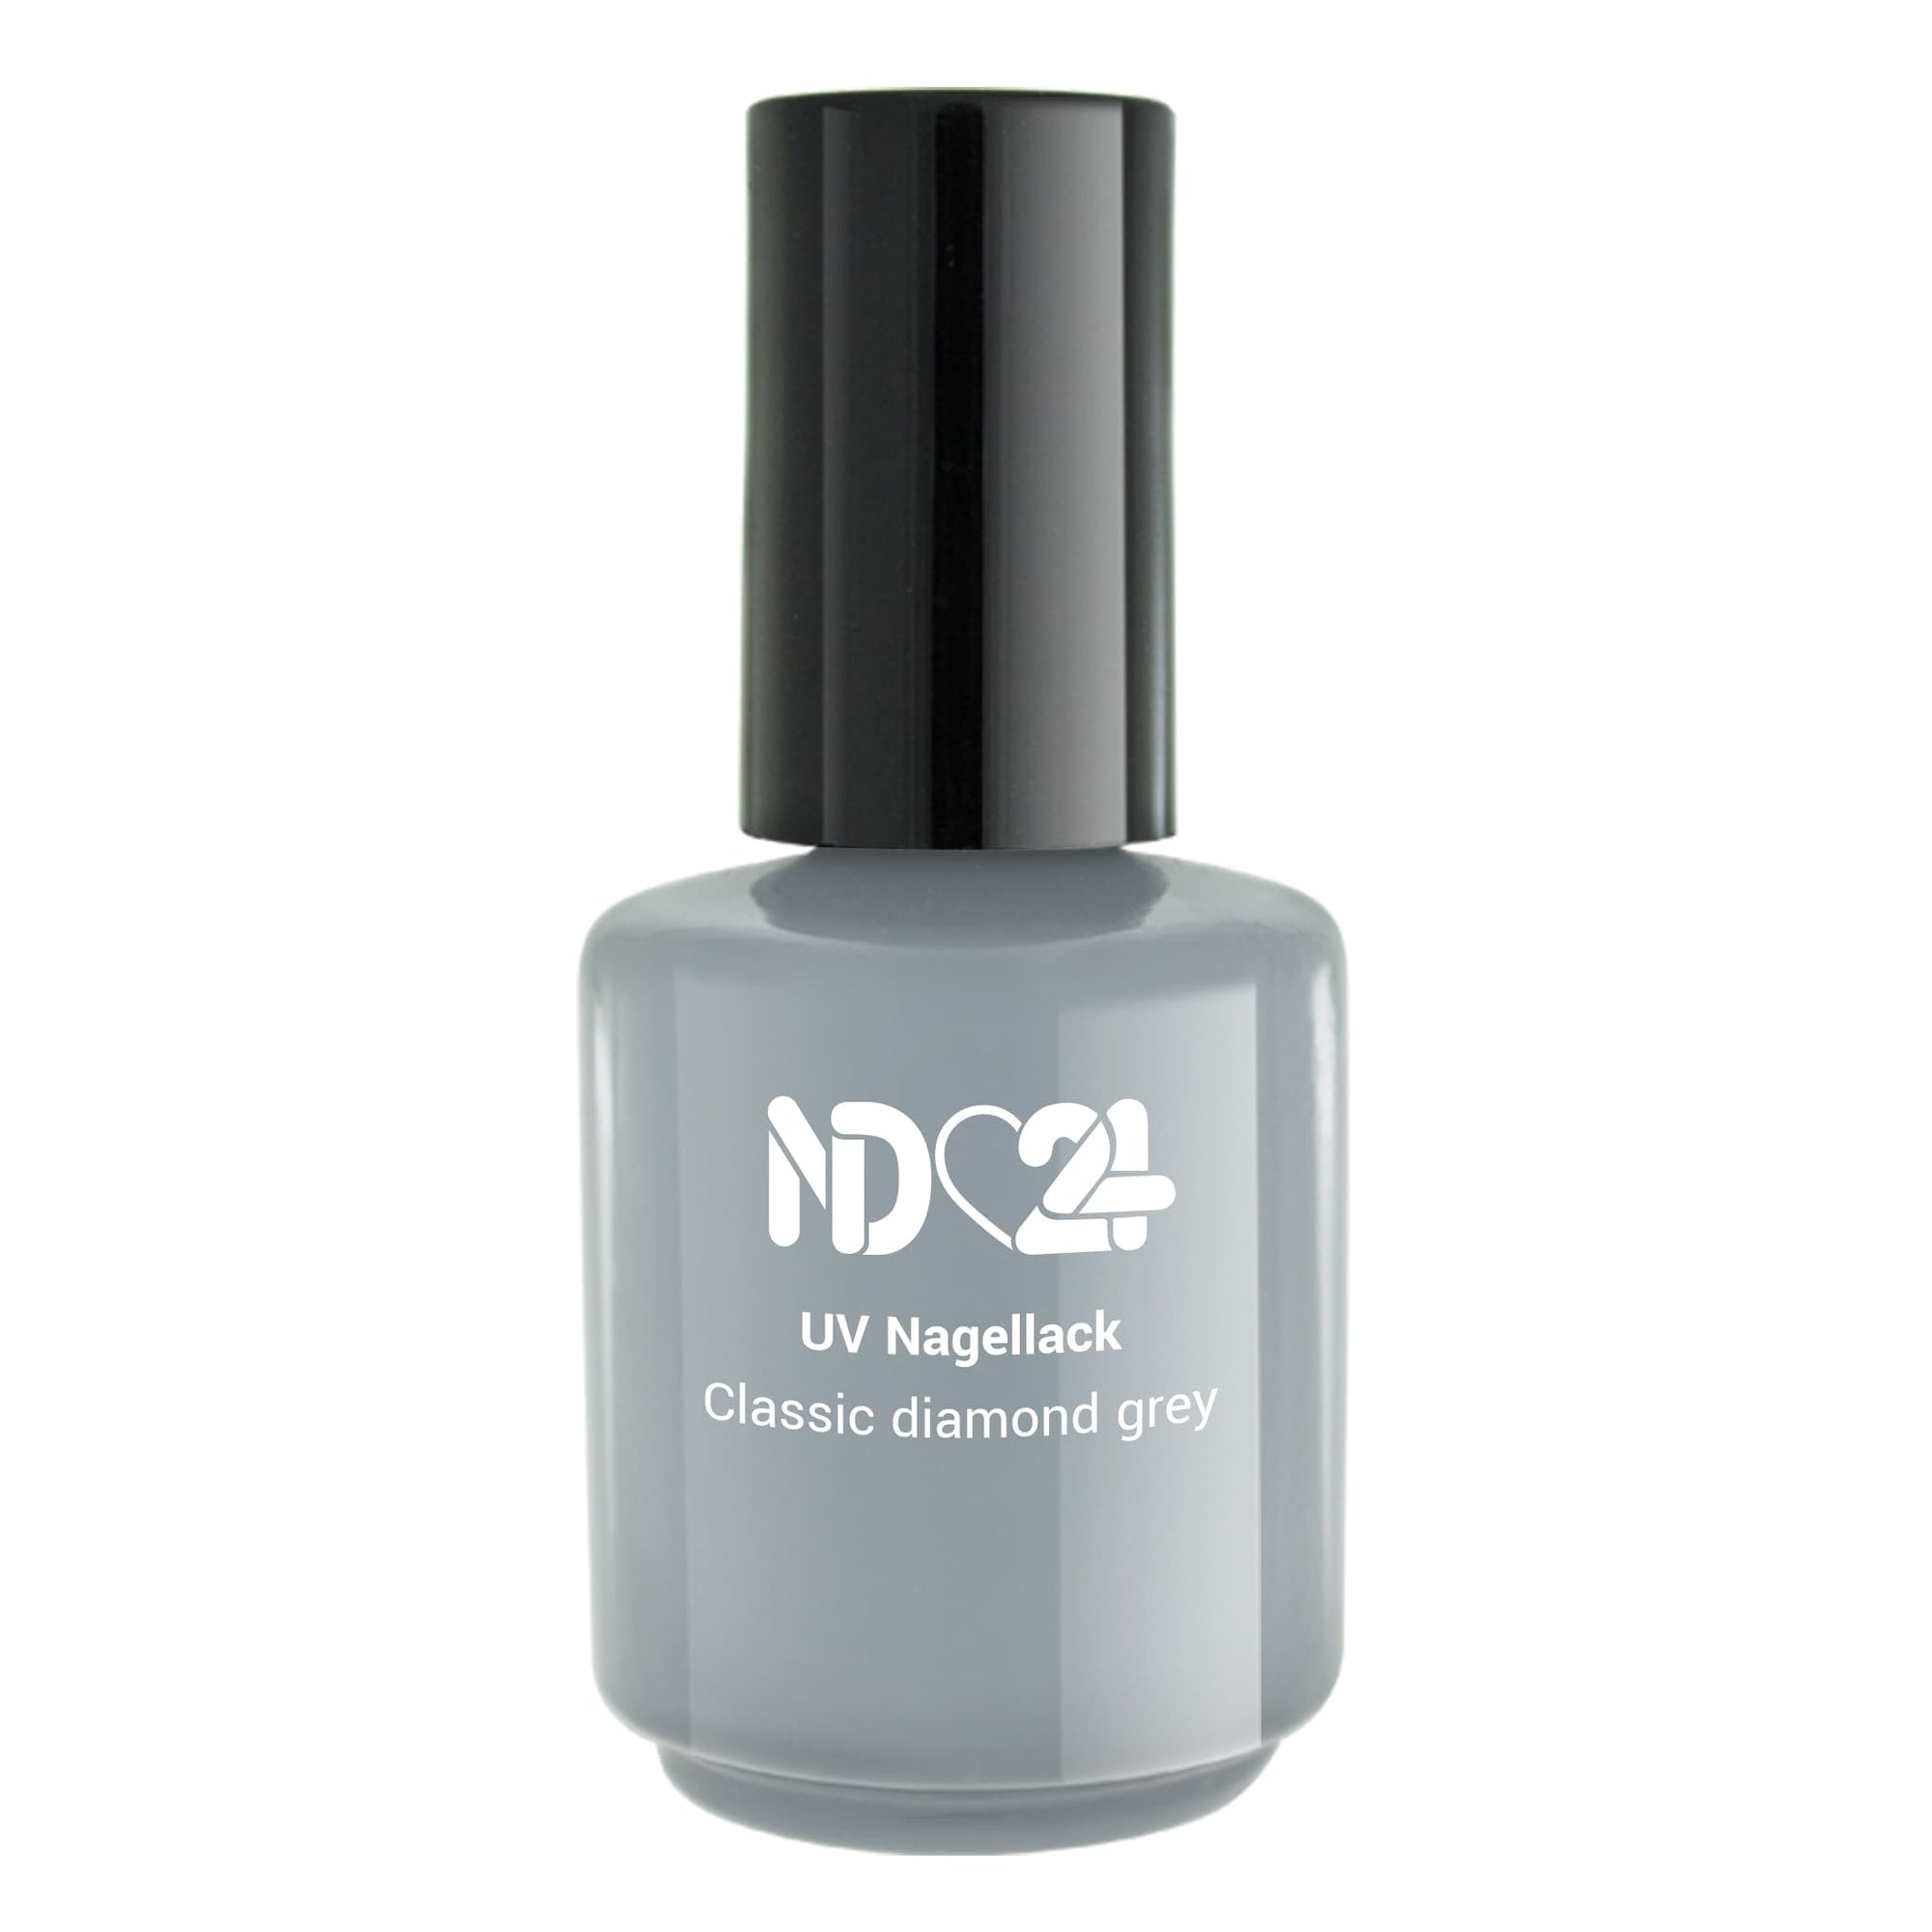 UV Nagellack Classic diamond grey